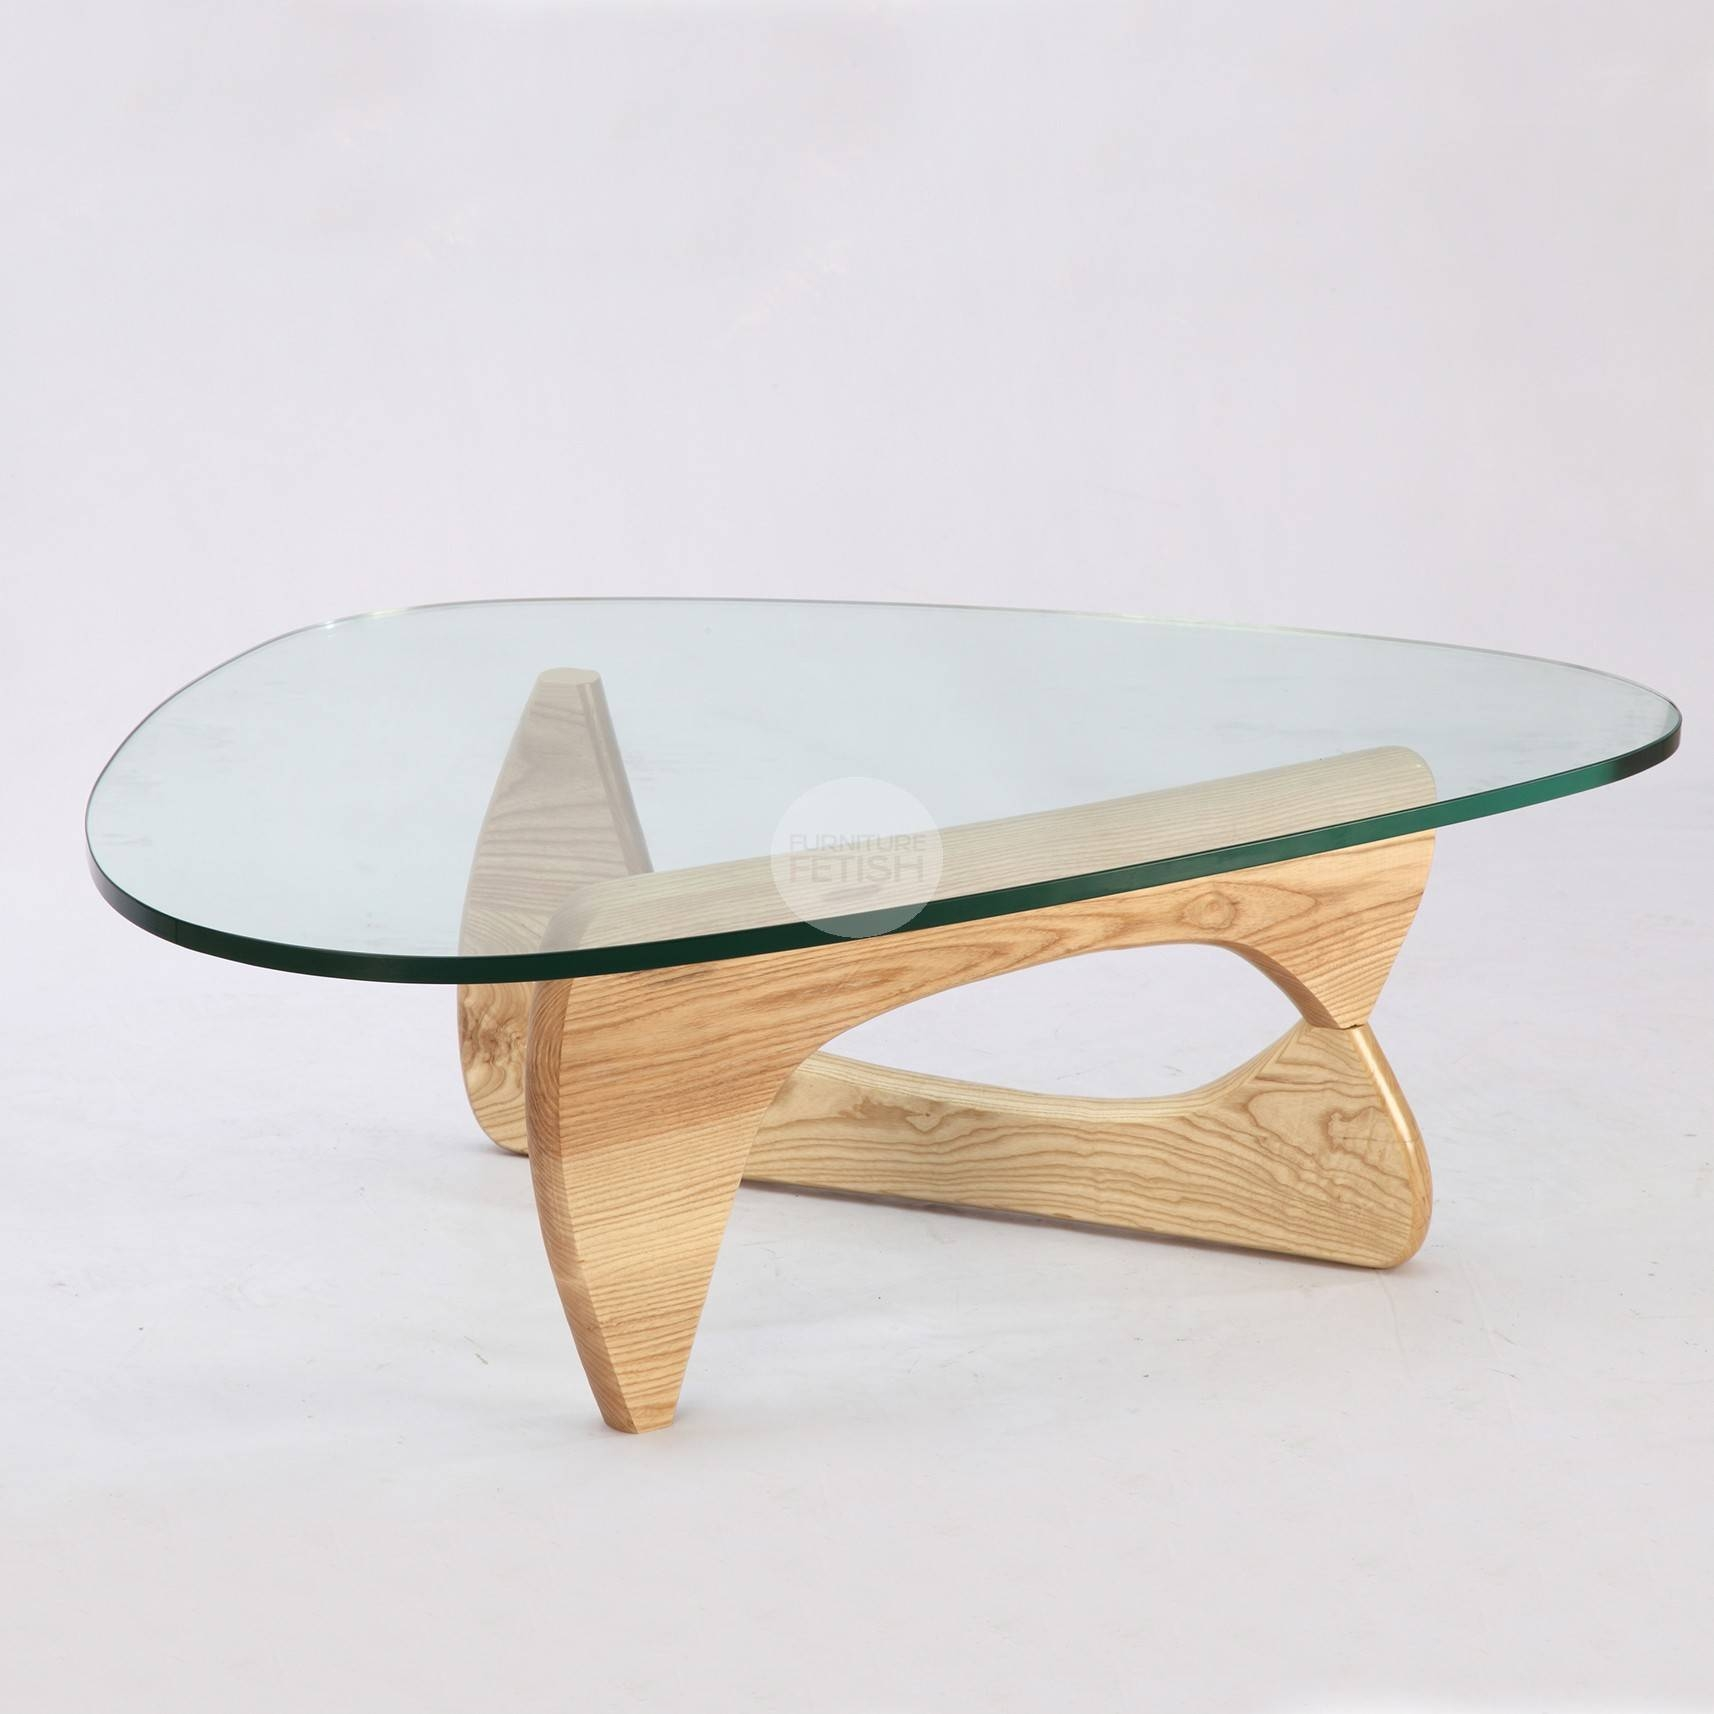 Noguchi Coffee Table | Home Designjohn in Noguchi Coffee Tables (Image 14 of 30)